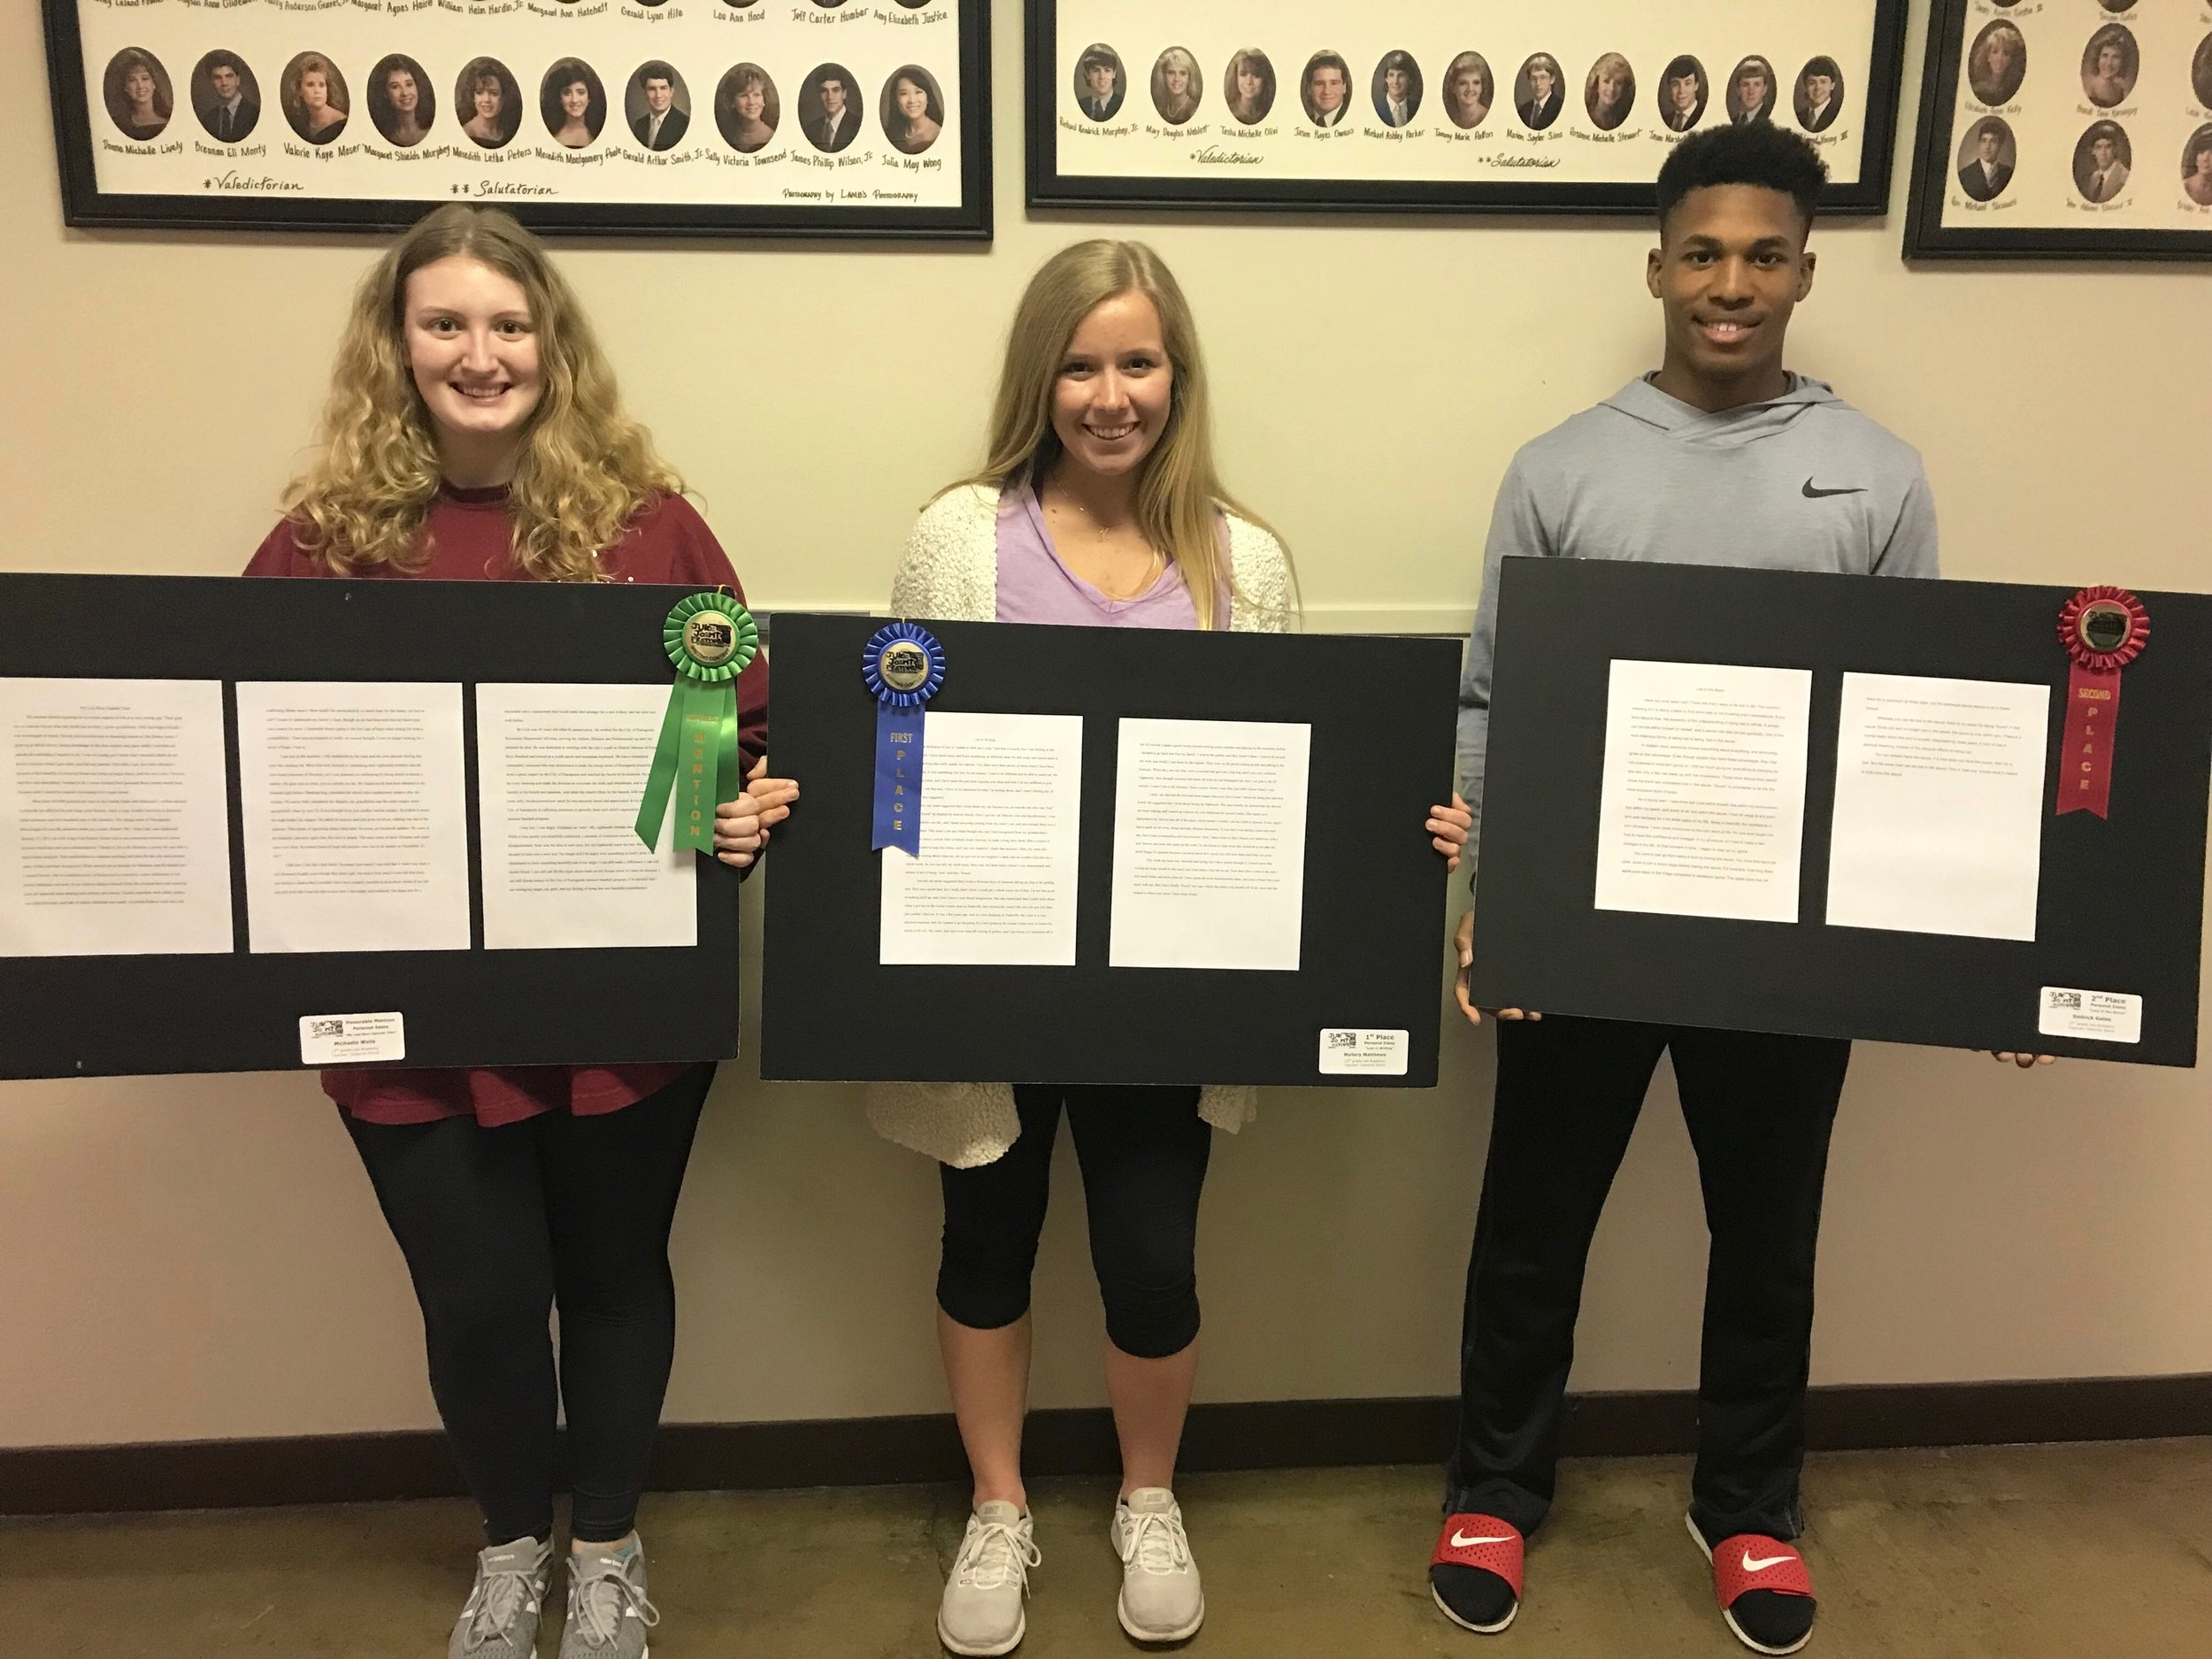 Pictured Left to Right are Seniors: Michaela Wells, Honorable Mention; Mallory Matthews, 1st Place; Dedrick Gates, 2nd Place; and Sara Lawrence, 3rd Place (not pictured)